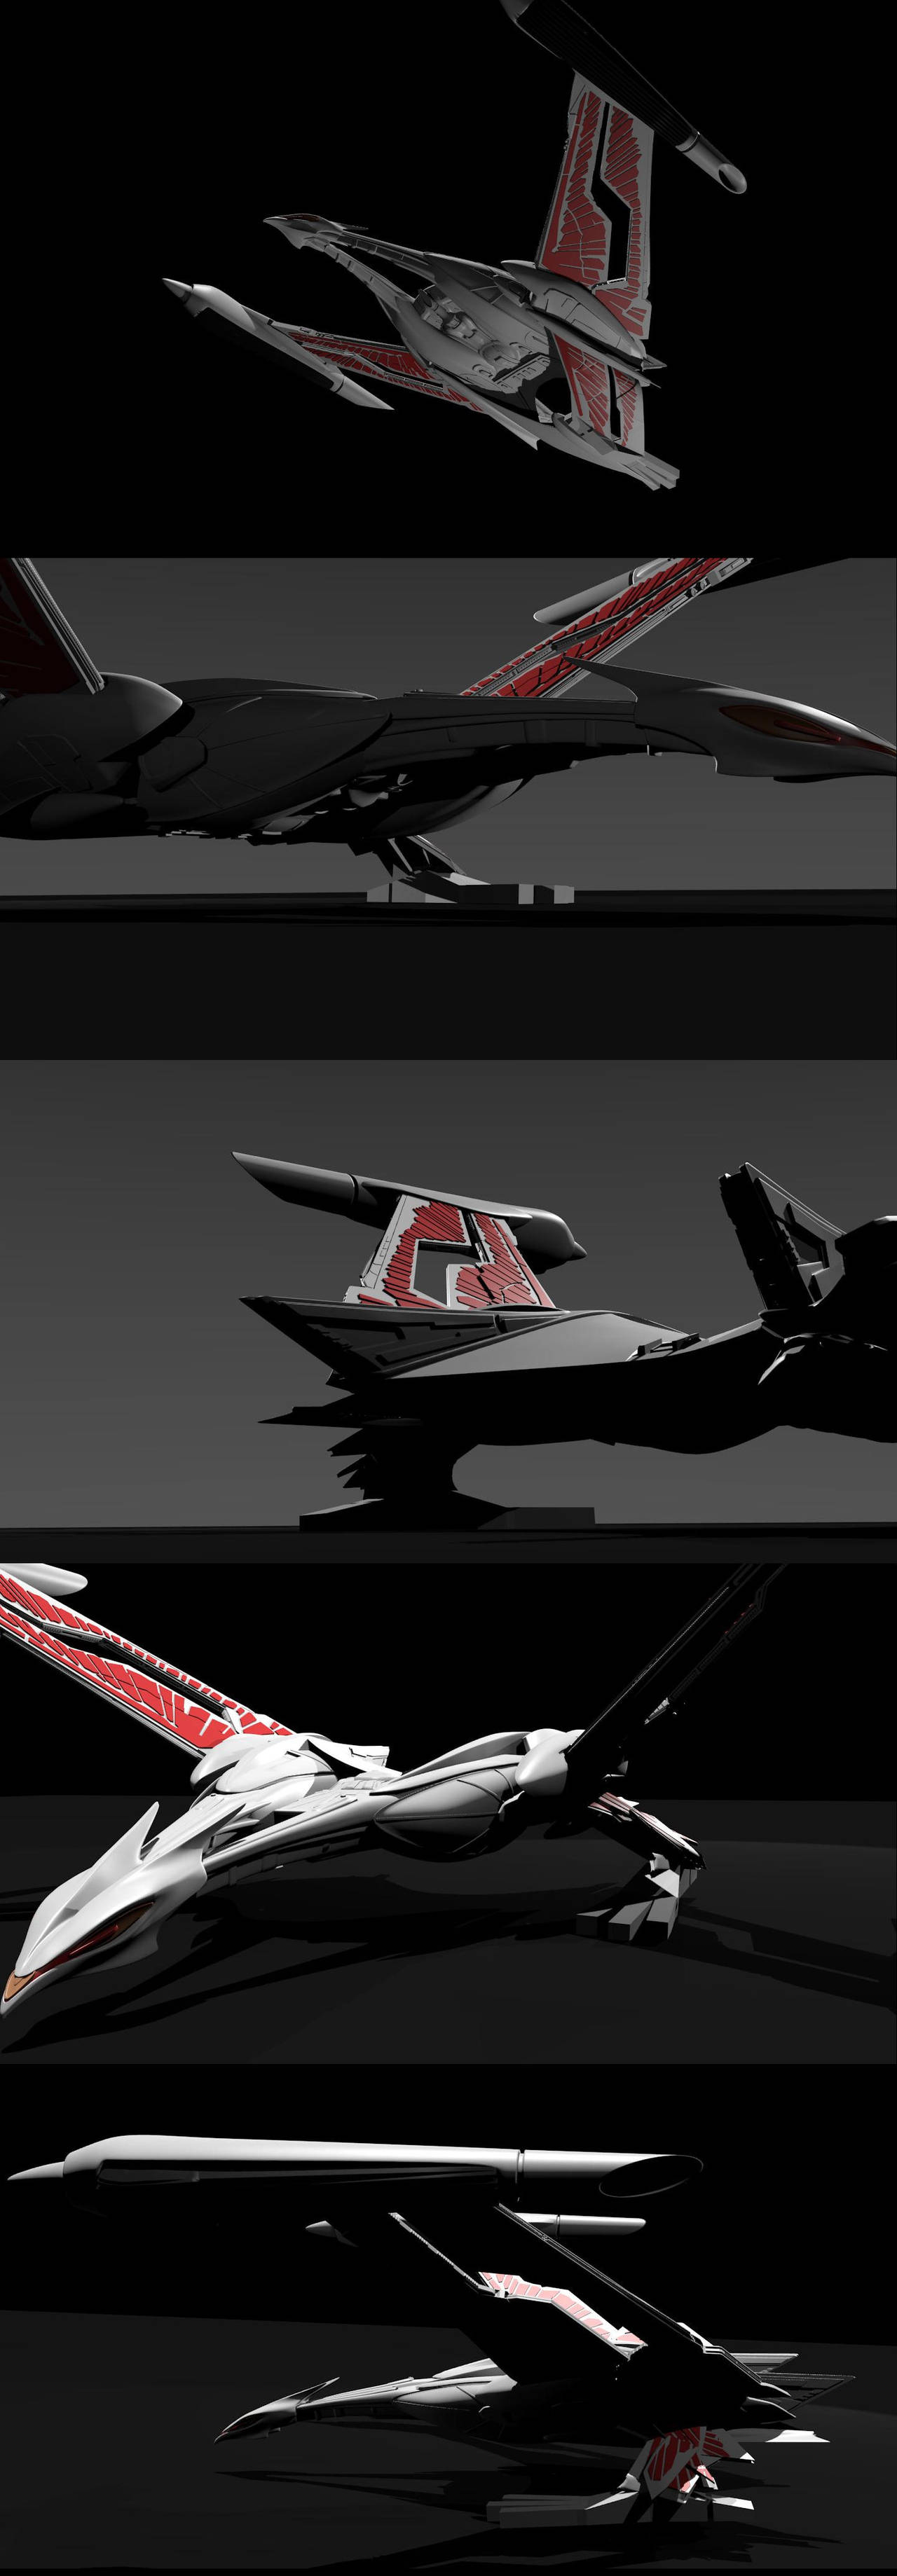 romulan_bird_of_prey_wip_11_by_jrxtin_dcw8lry-fullview.jpg